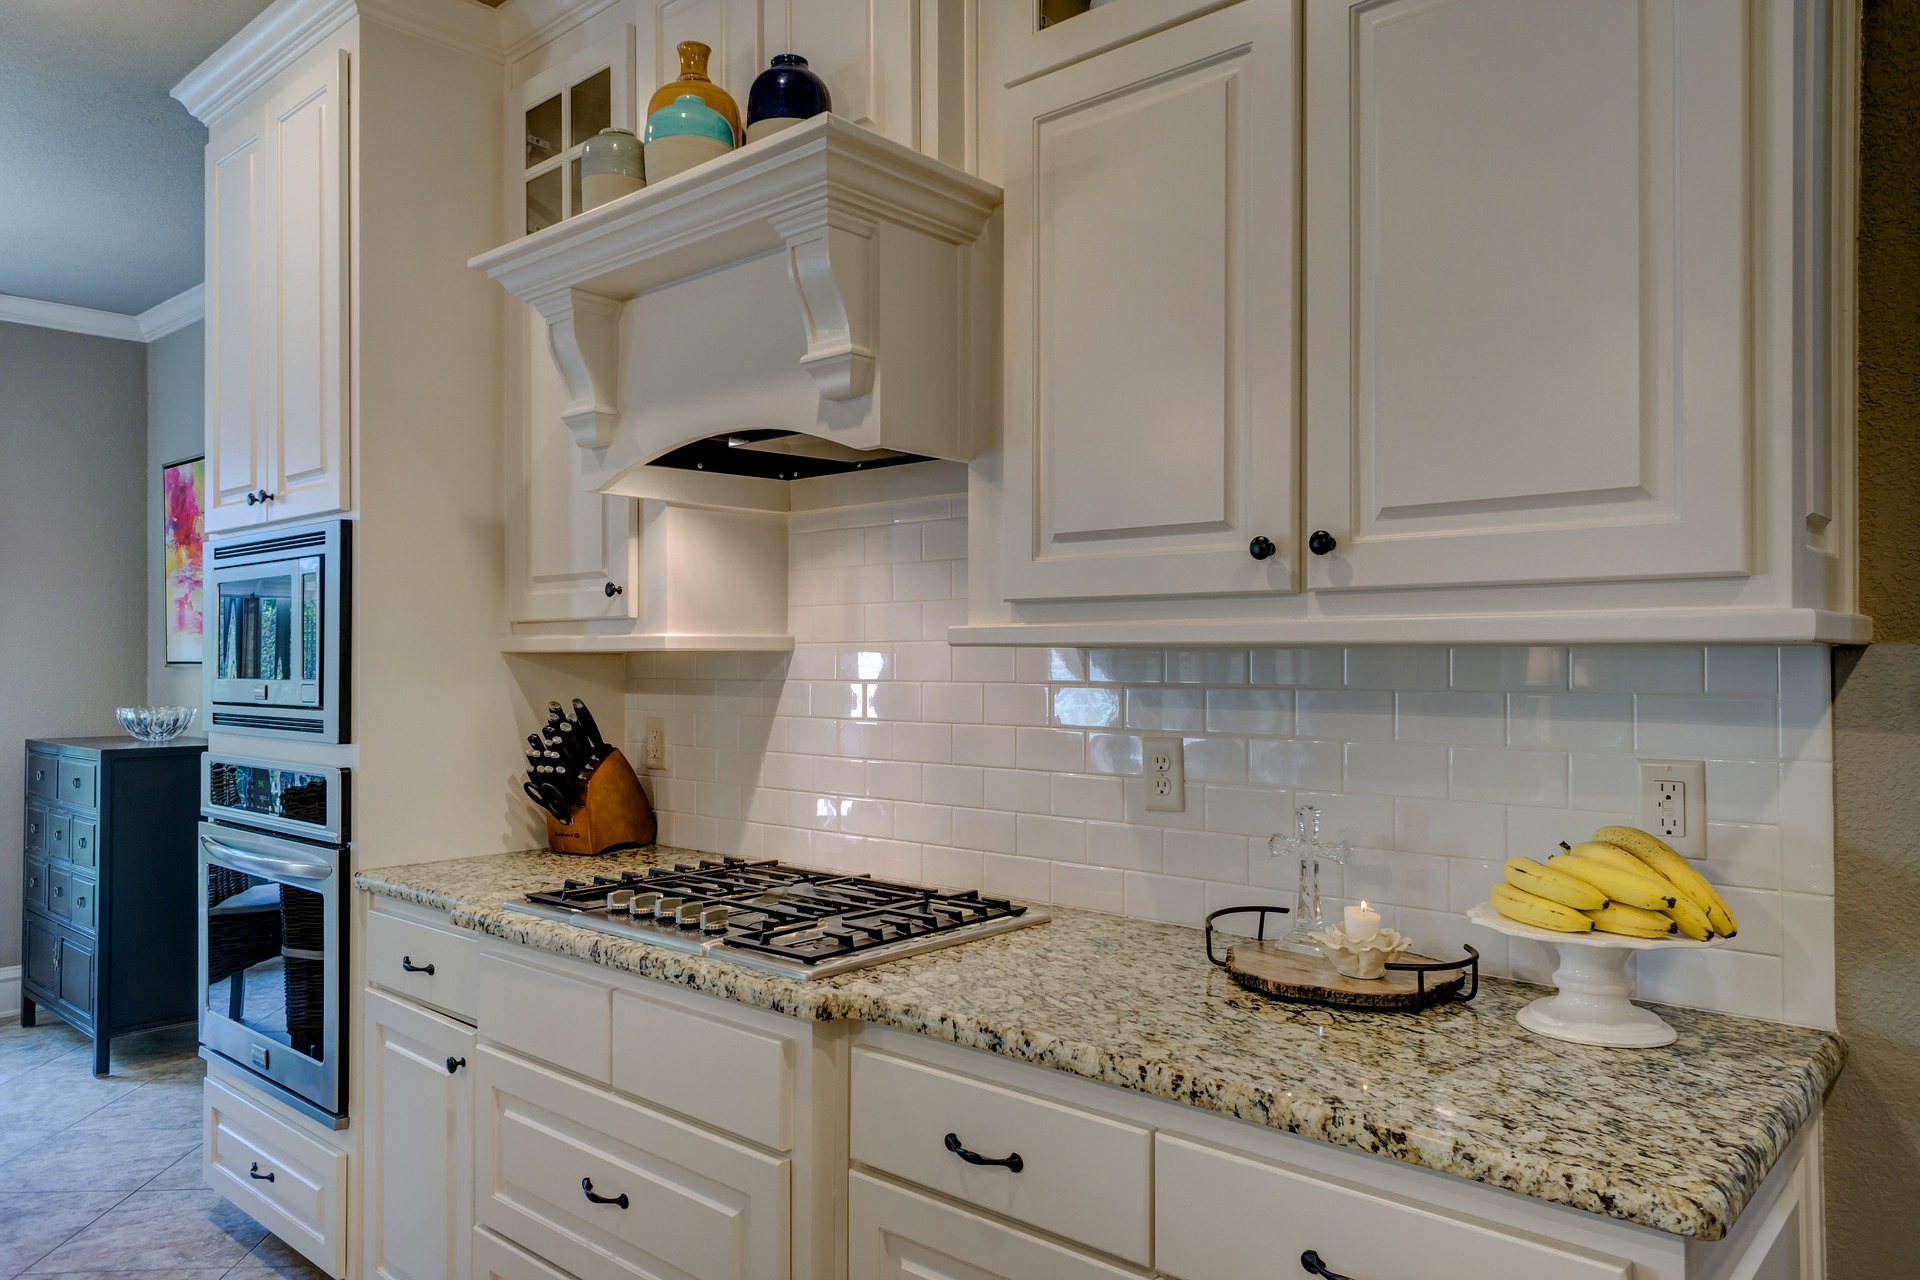 A bright white kitchen, with freshly repainted cabinets